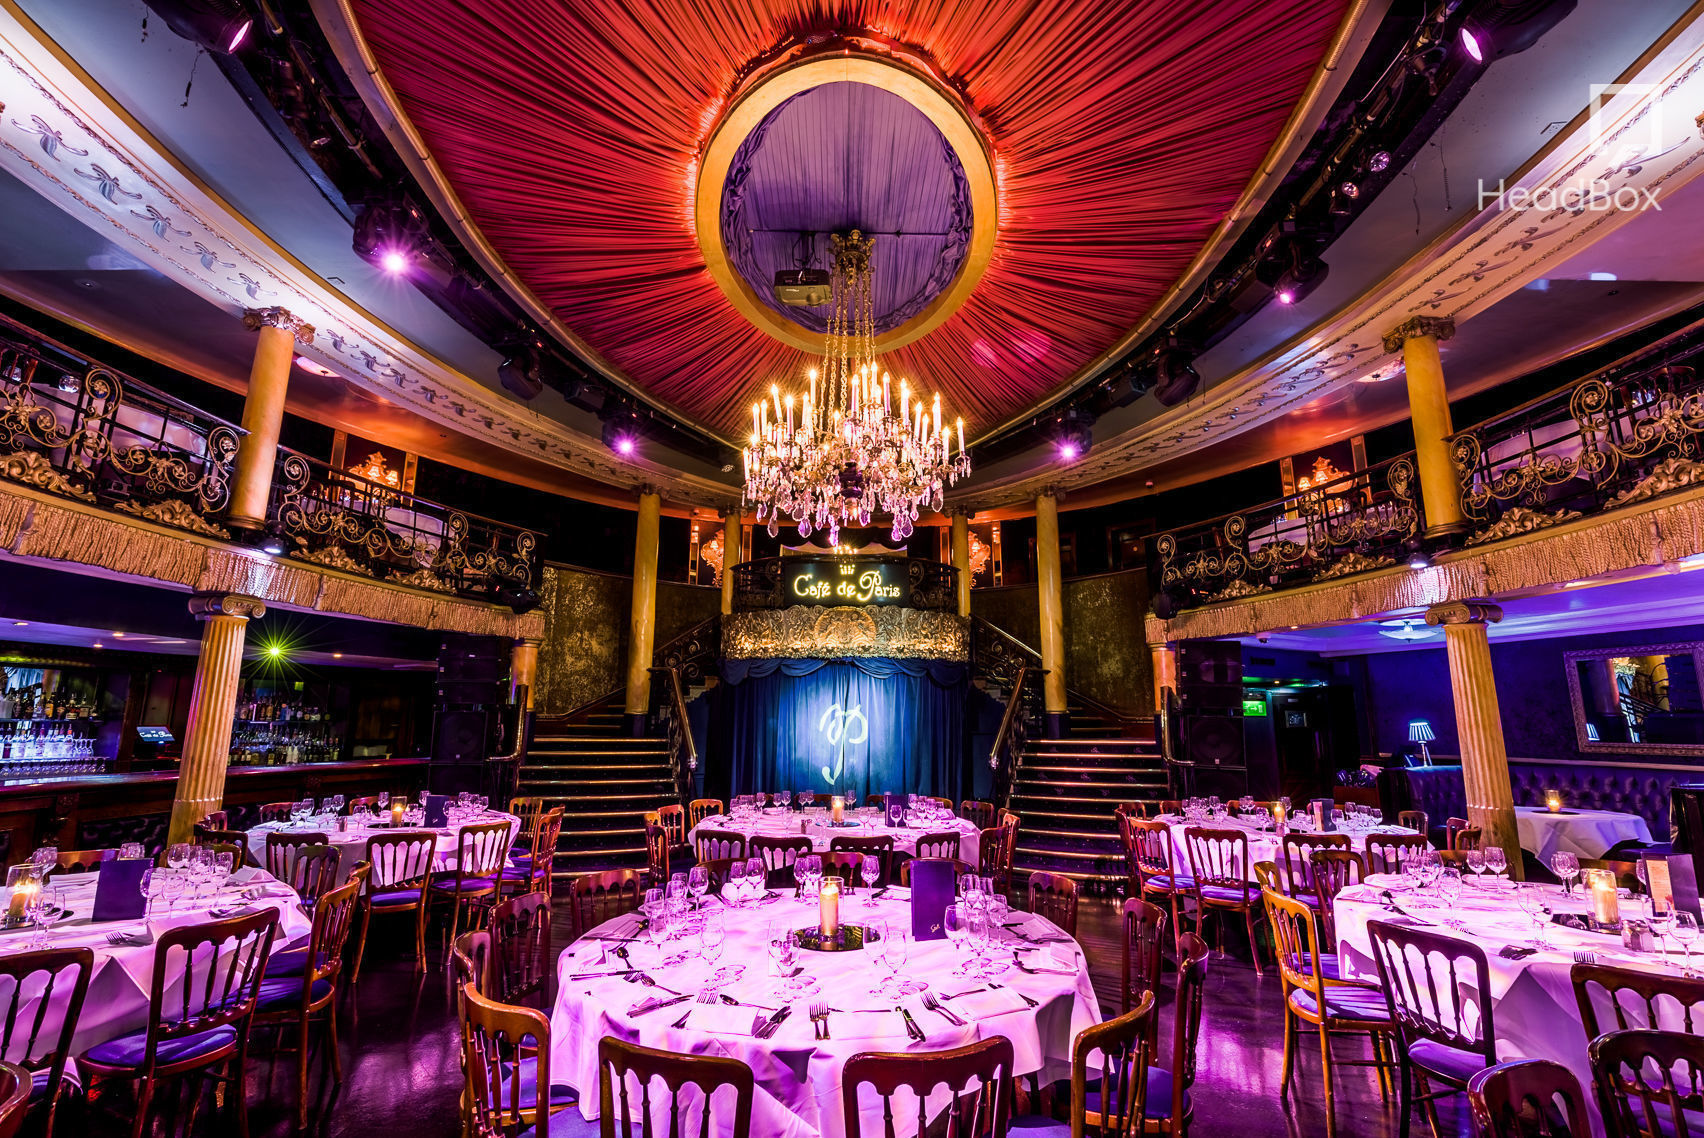 cafe de paris is a large theatrical building the image is of the stage area